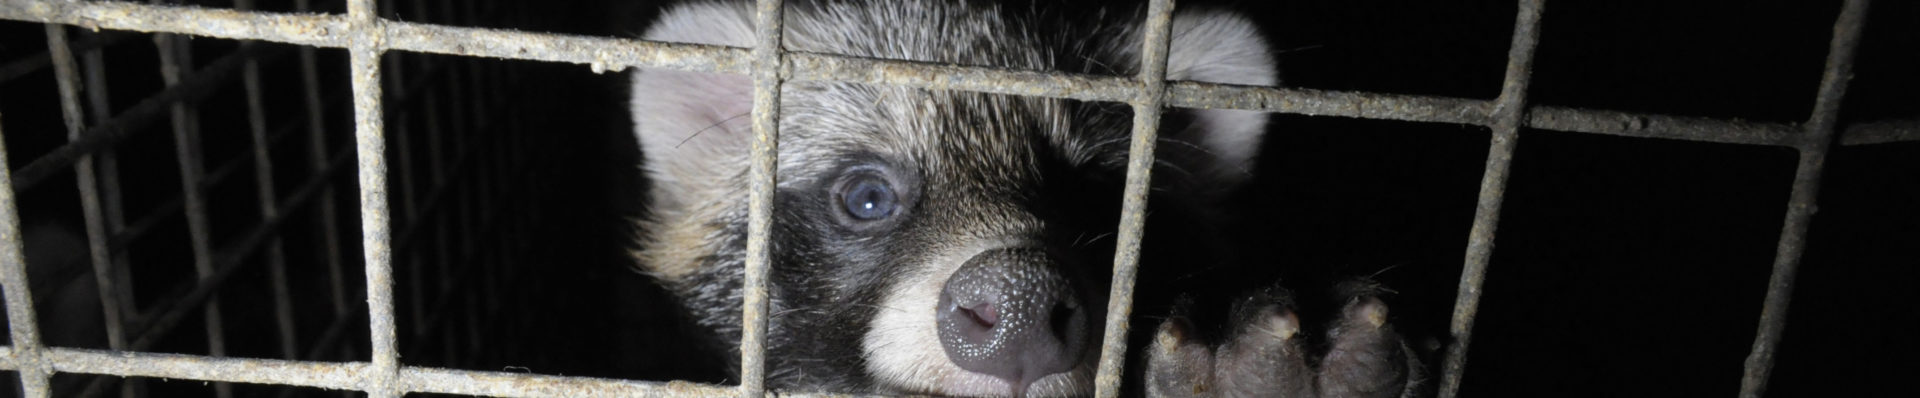 Czech fur farming ban passed in second reading